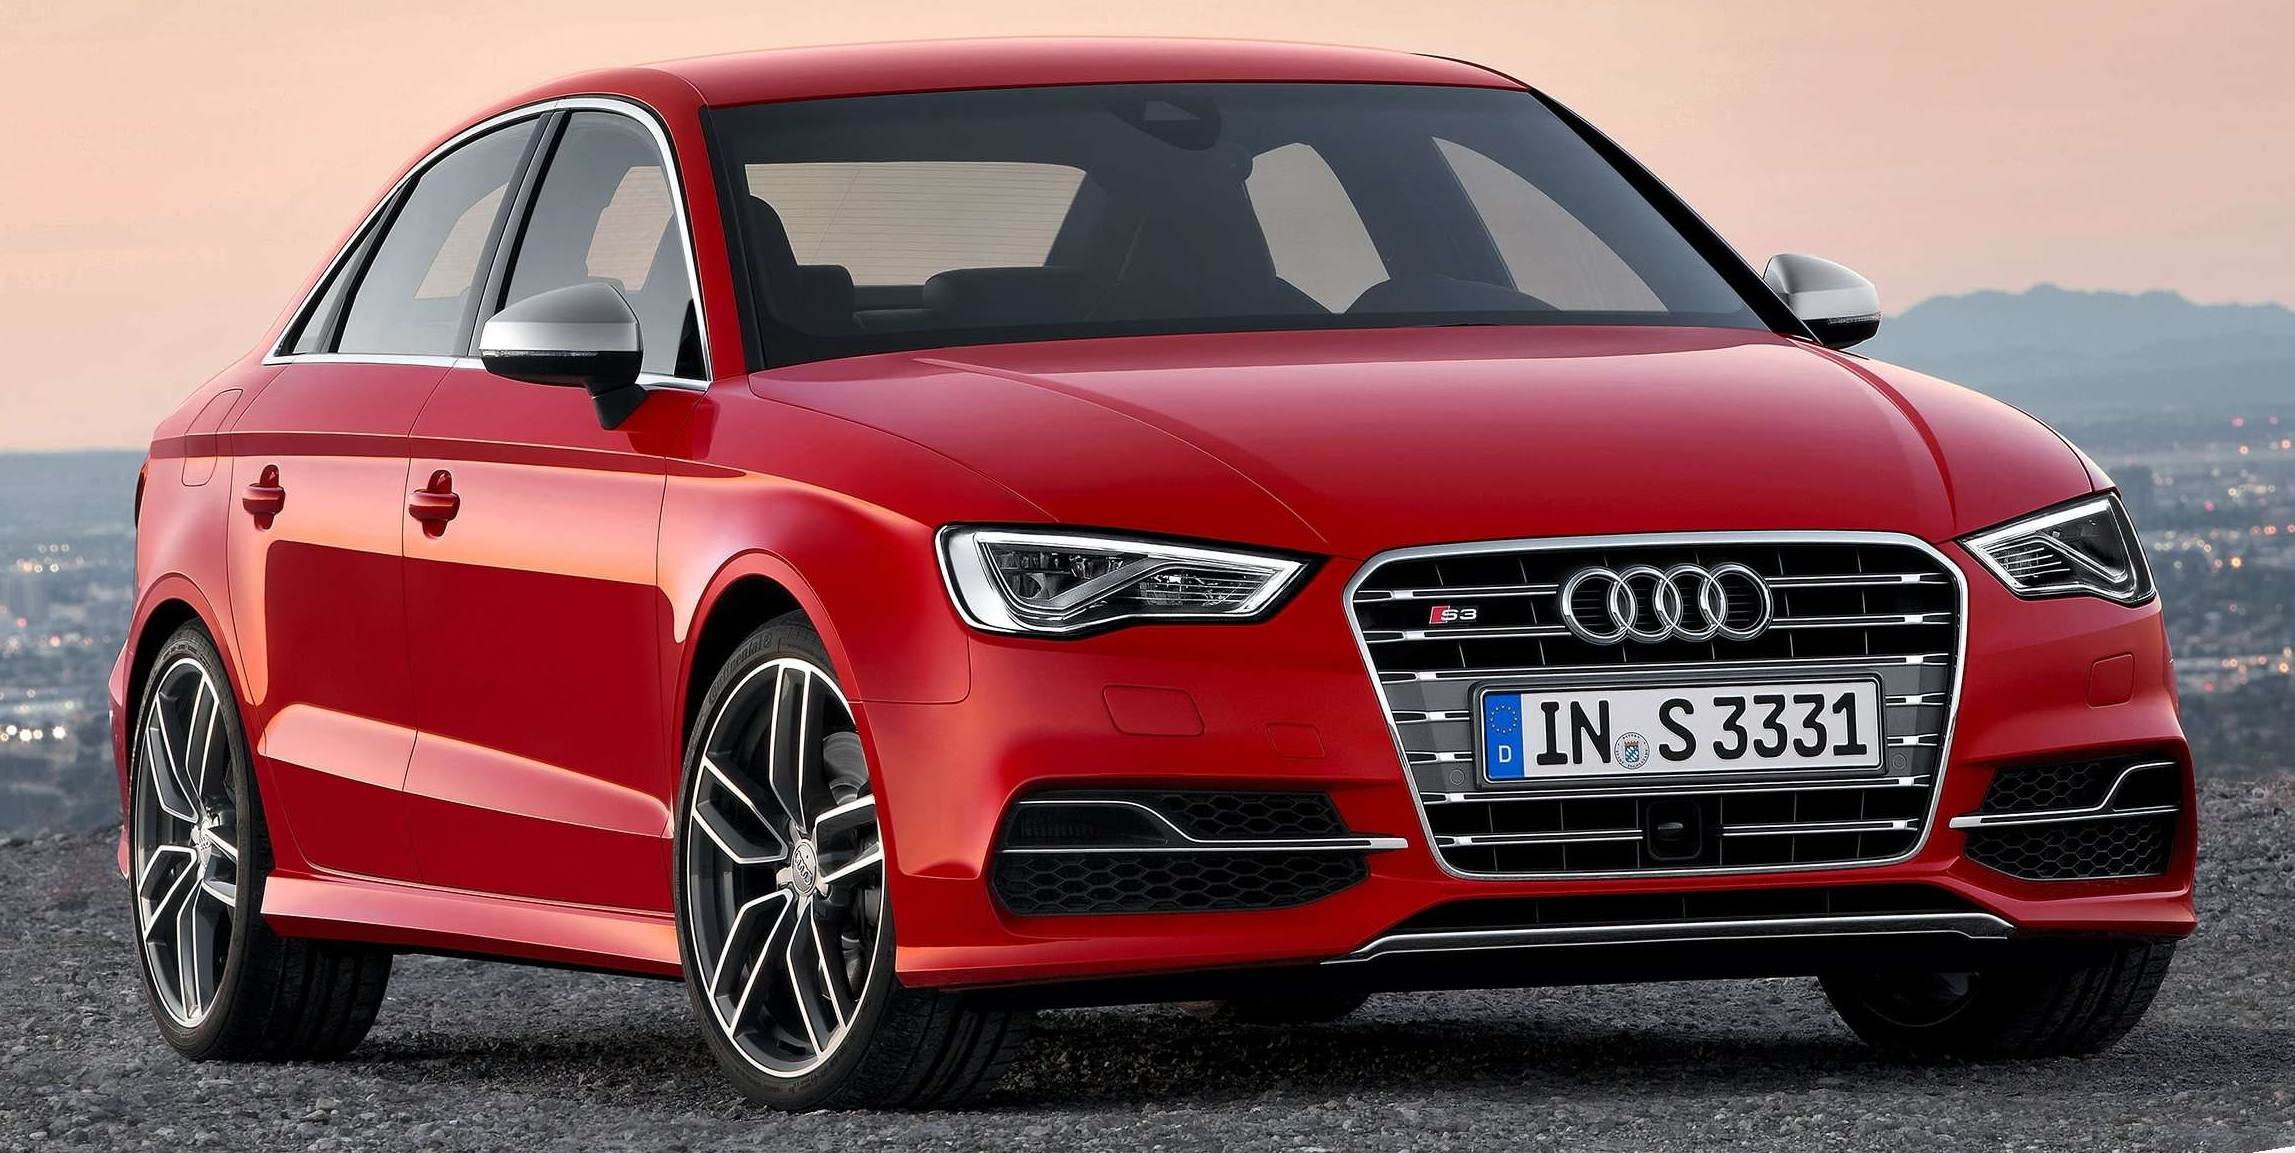 Latest audi car 2015 price in pakistan 2014 7